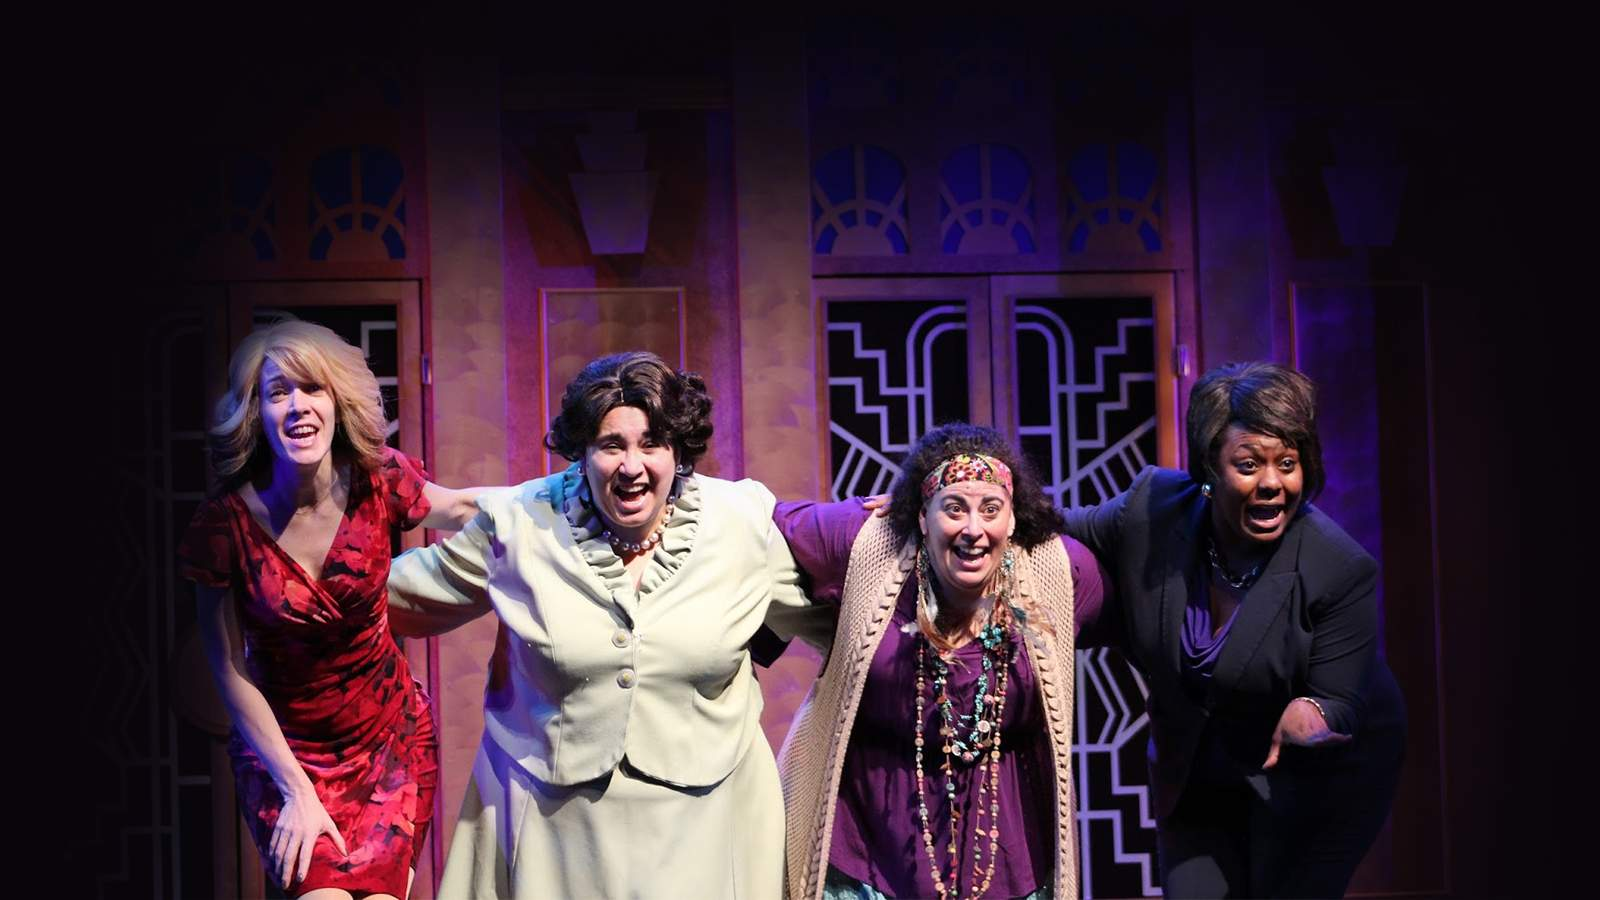 Menopause the Musical (Rescheduled from 6/17/2020, 11/13/2020)